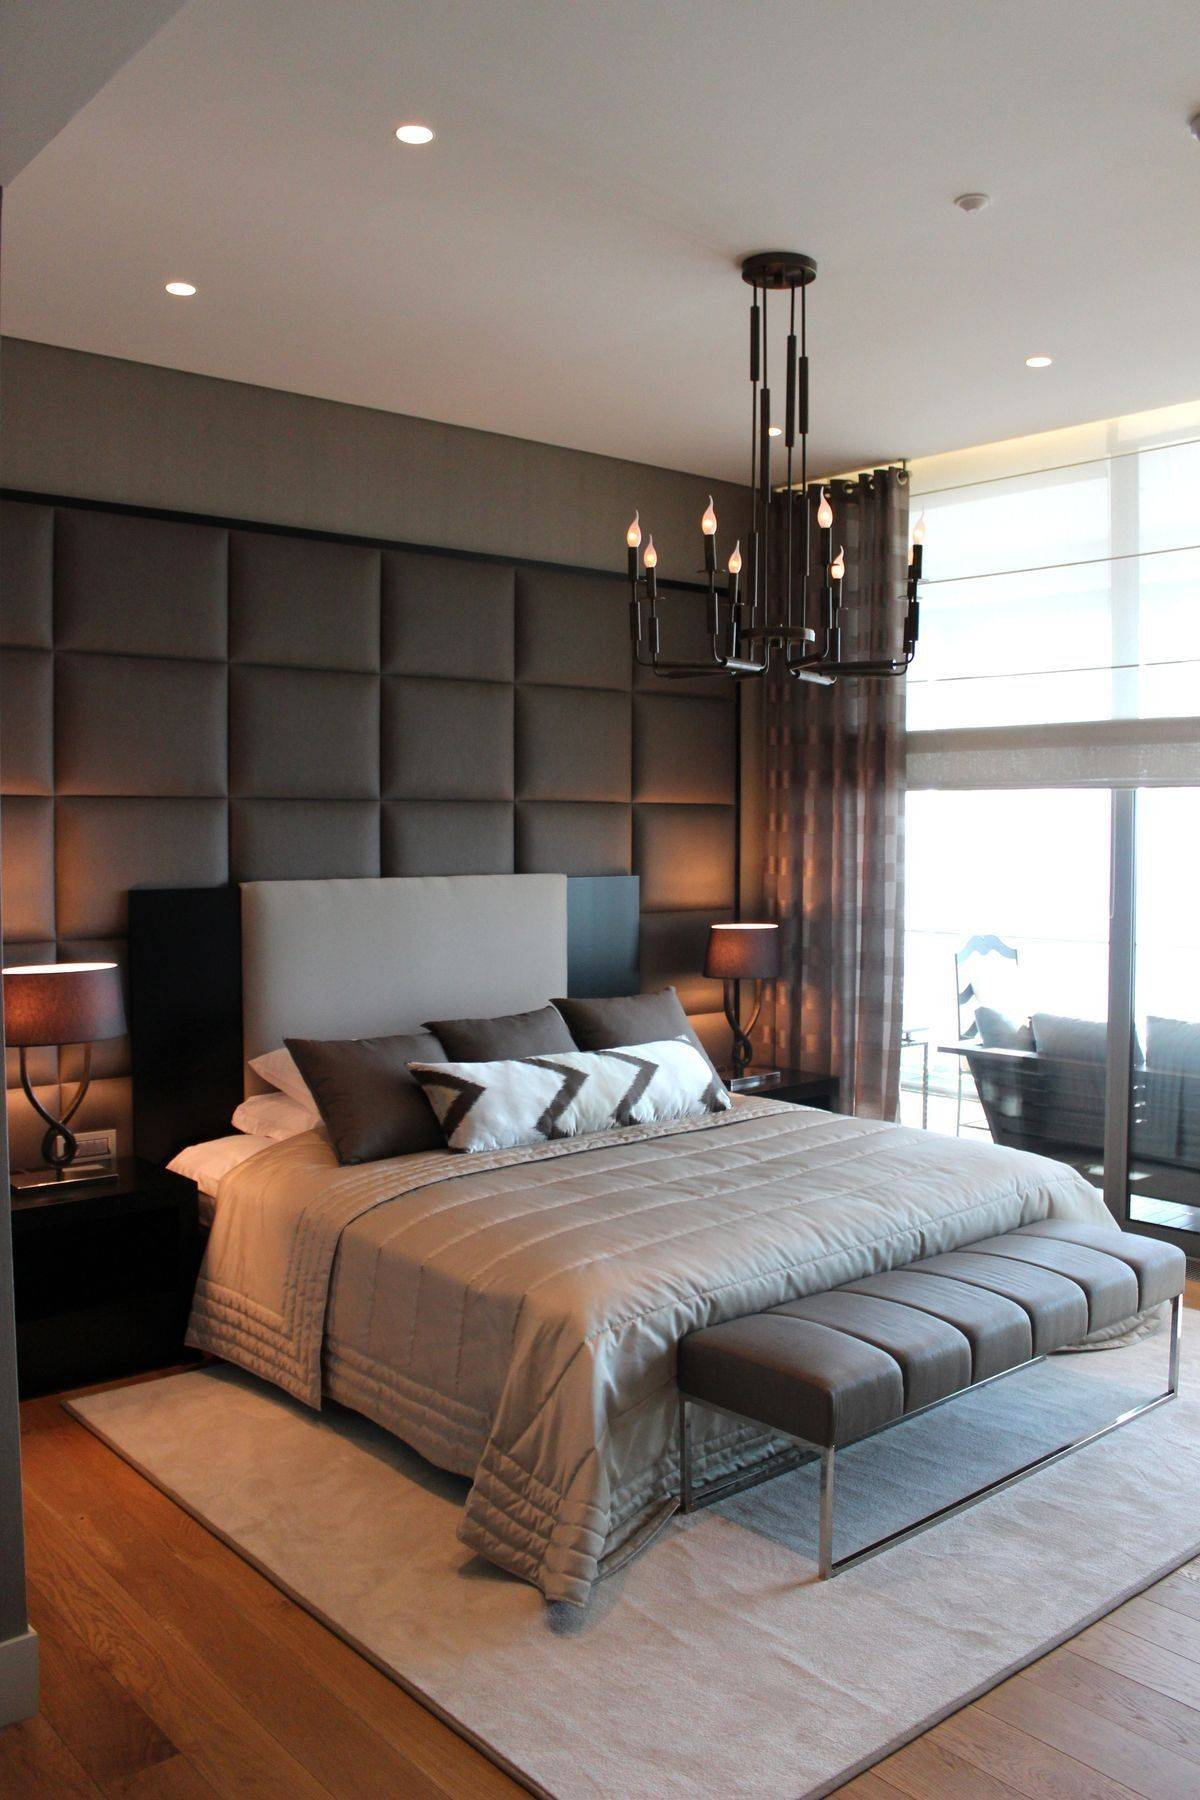 house ideas interior living room beds fresh media cache ec0 pinimg 1200x 03 01 0d bedroom in 2018 of house ideas interior living room beds